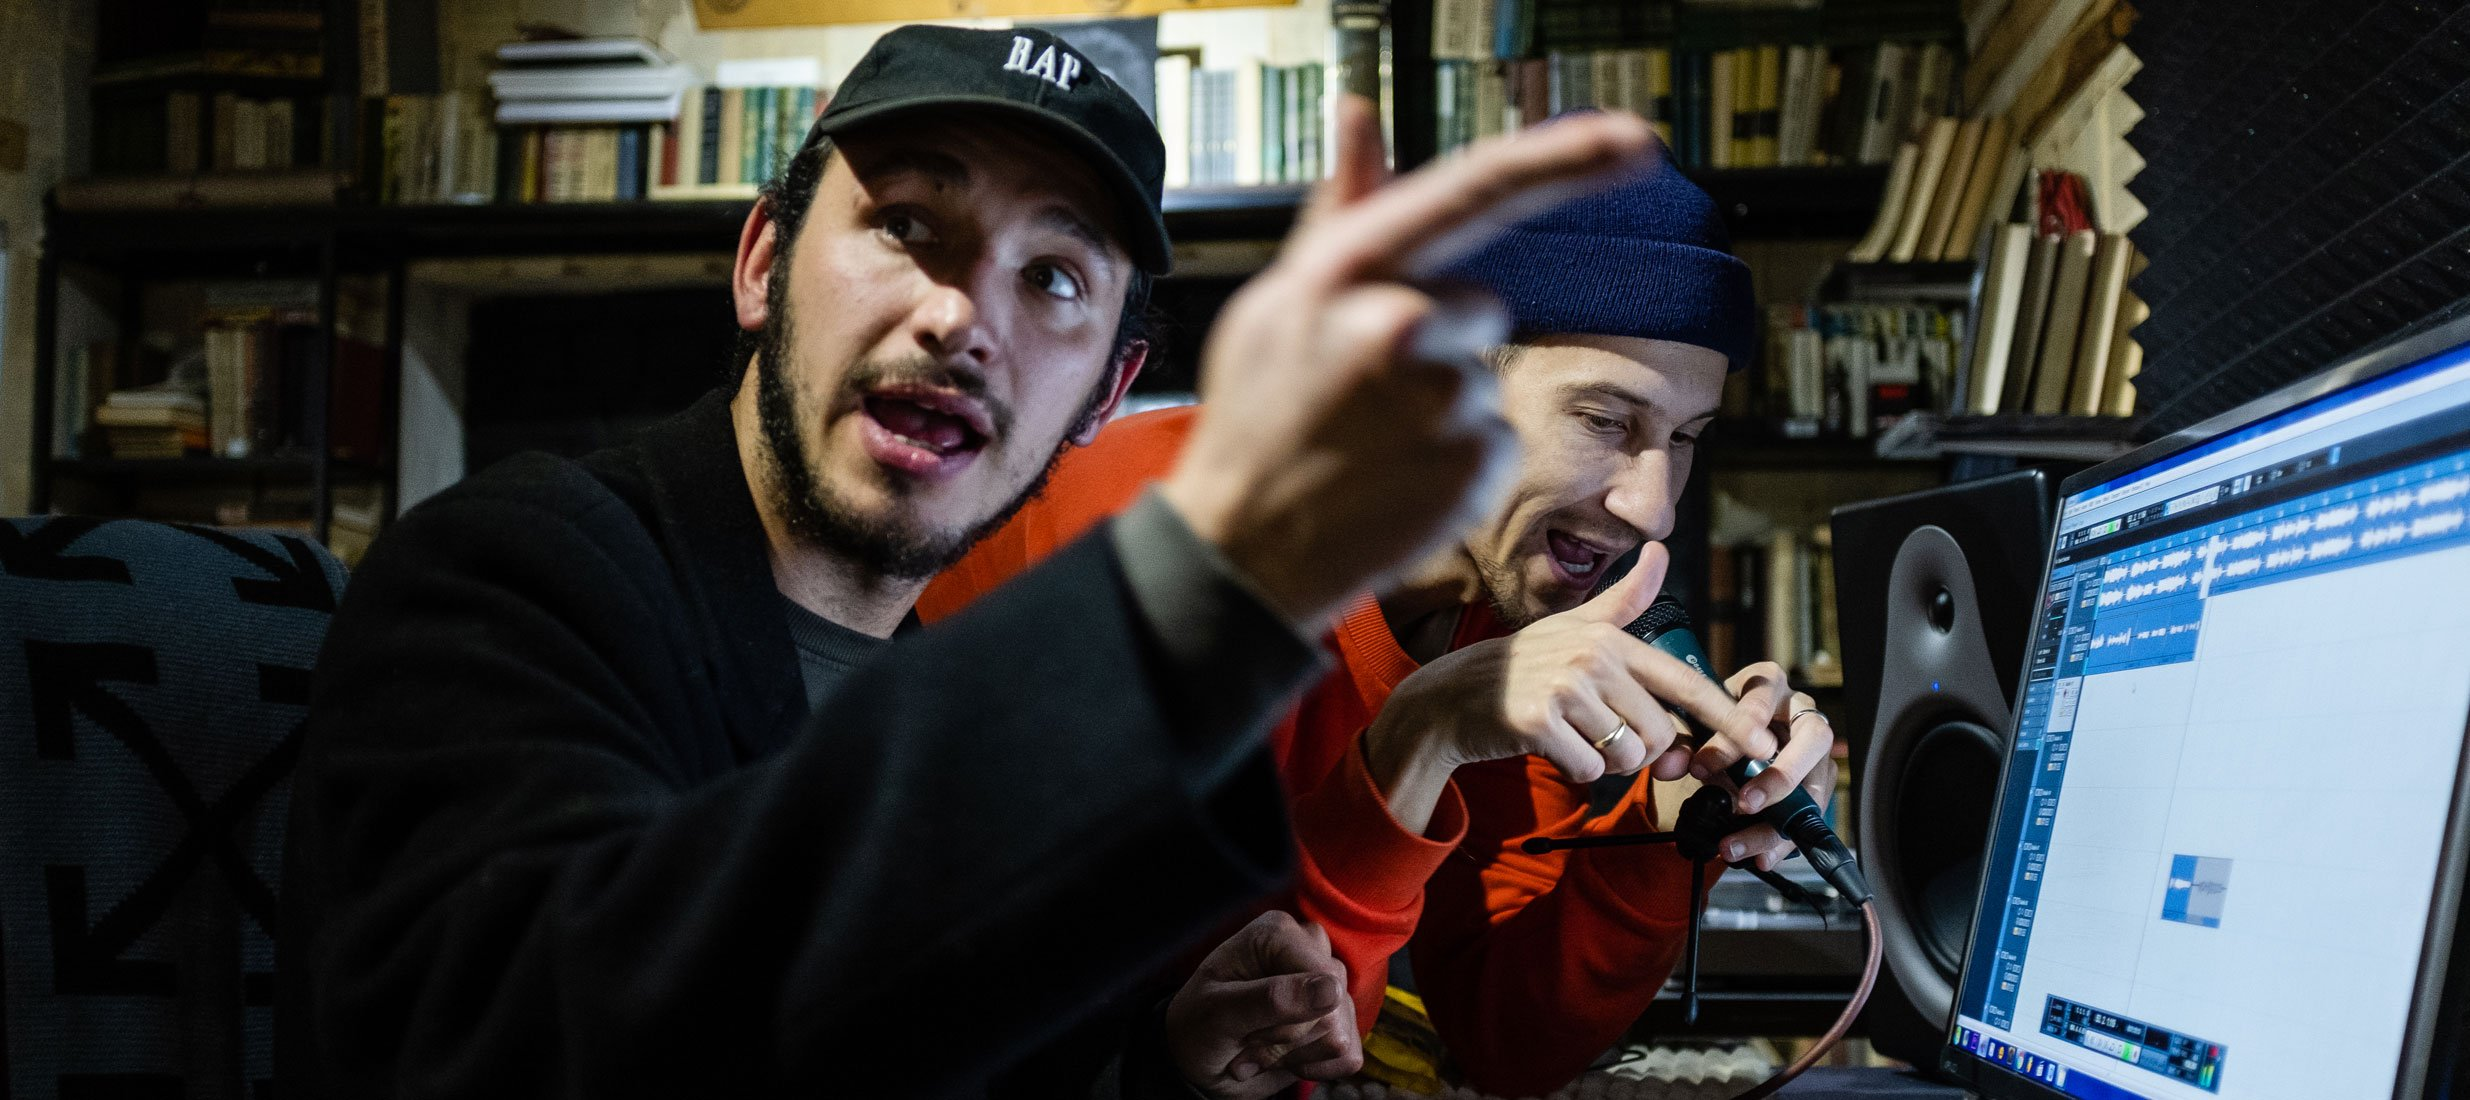 How battle rap and streaming platforms are bridging Kyrgyz hip-hop's elders and youth